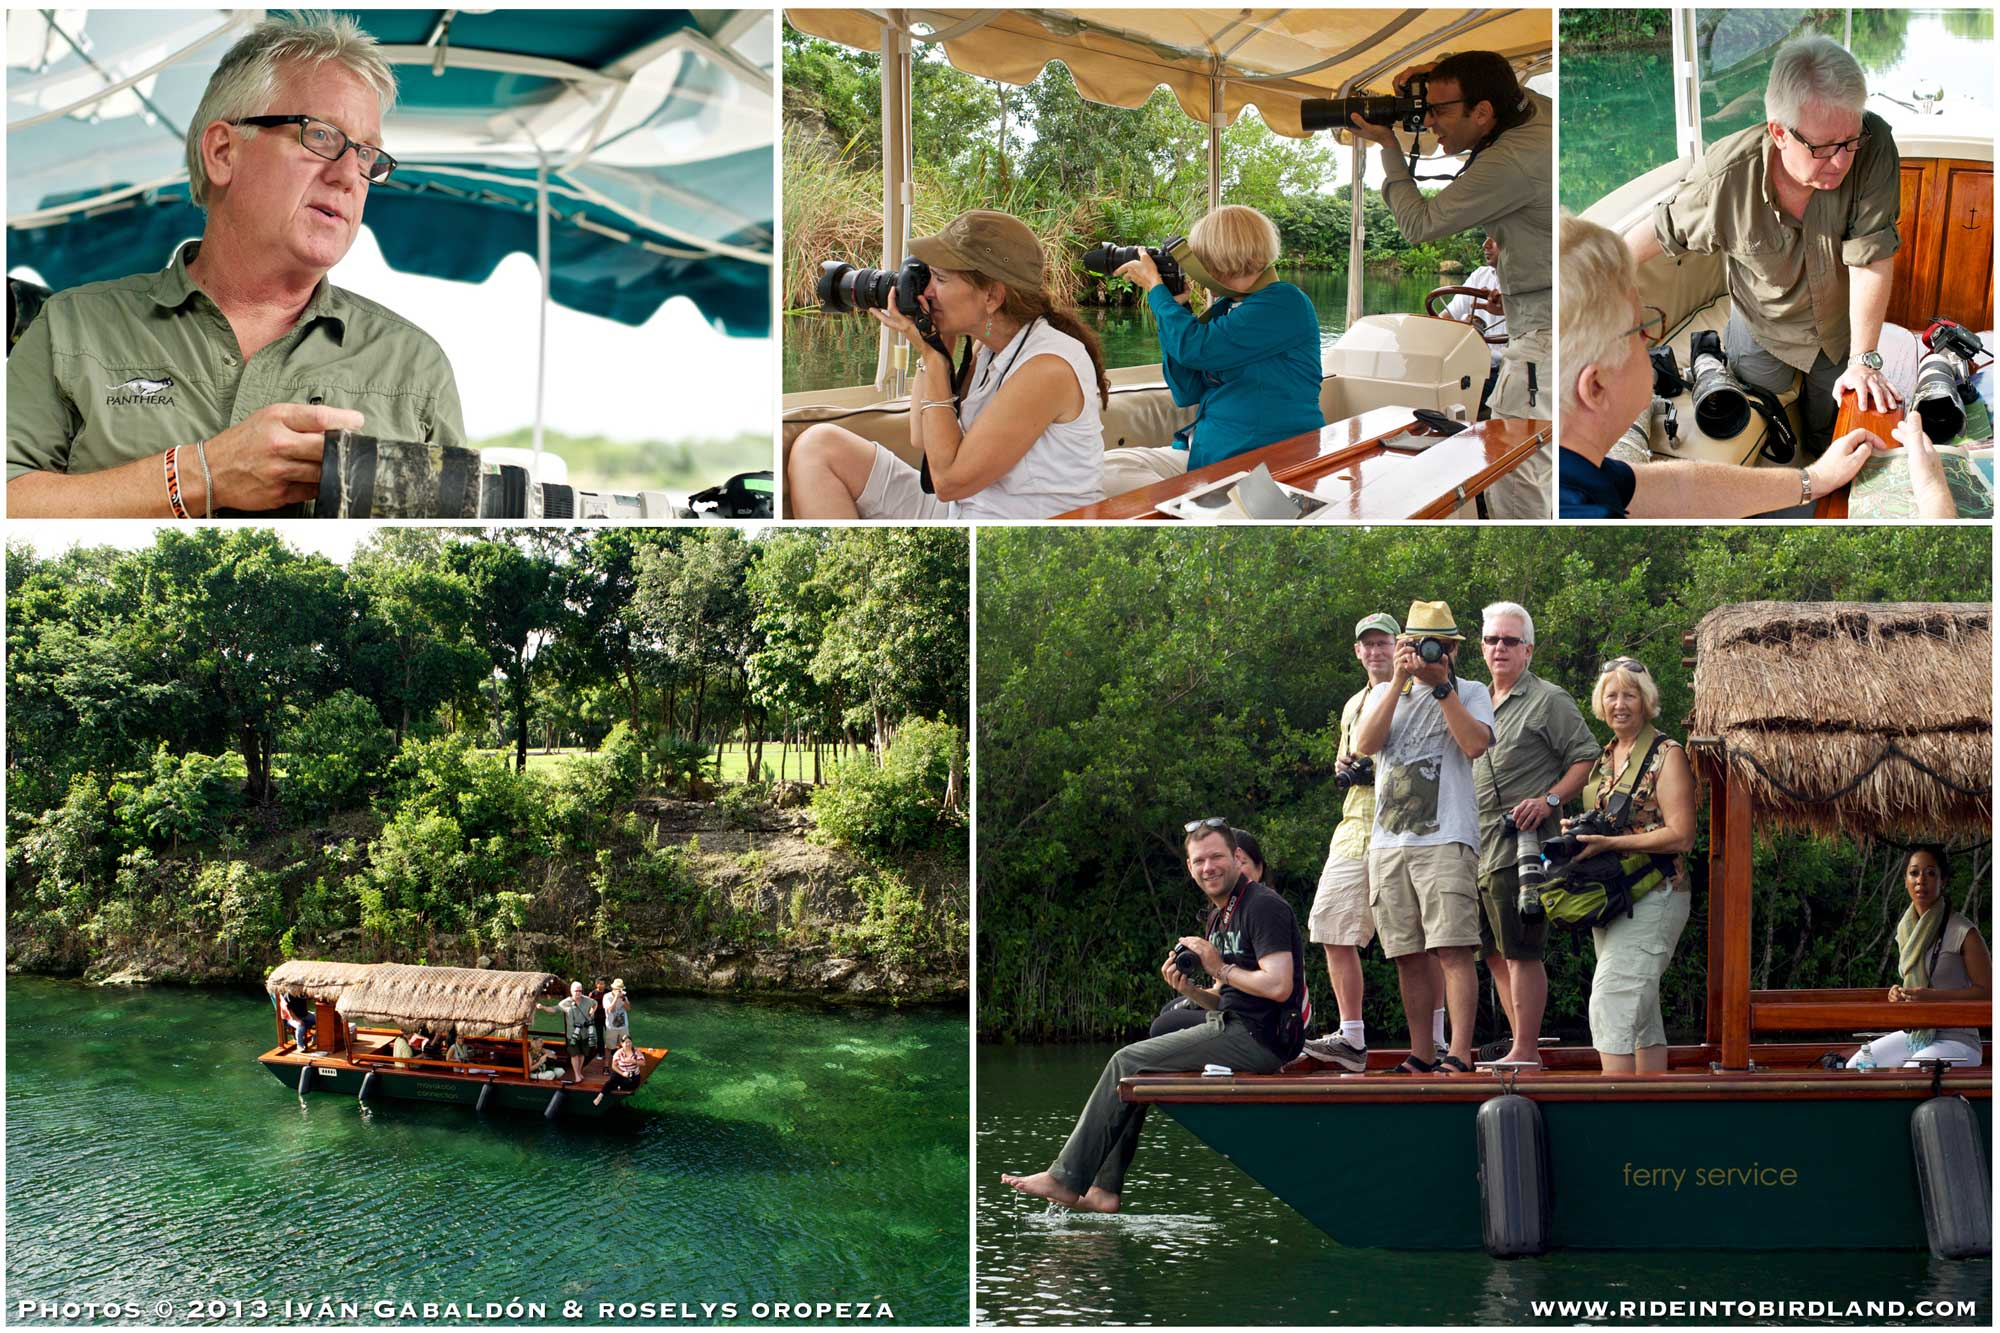 Clockwise from top left: Steve Winter talks photography; Sharon Guynup, Cherie Pitillo and Ivan Gabaldon shoot from the electric boat; Steve Winter and James Batt review a map of Mayakoba; Steve Winter and Master Class participants aboard the electric